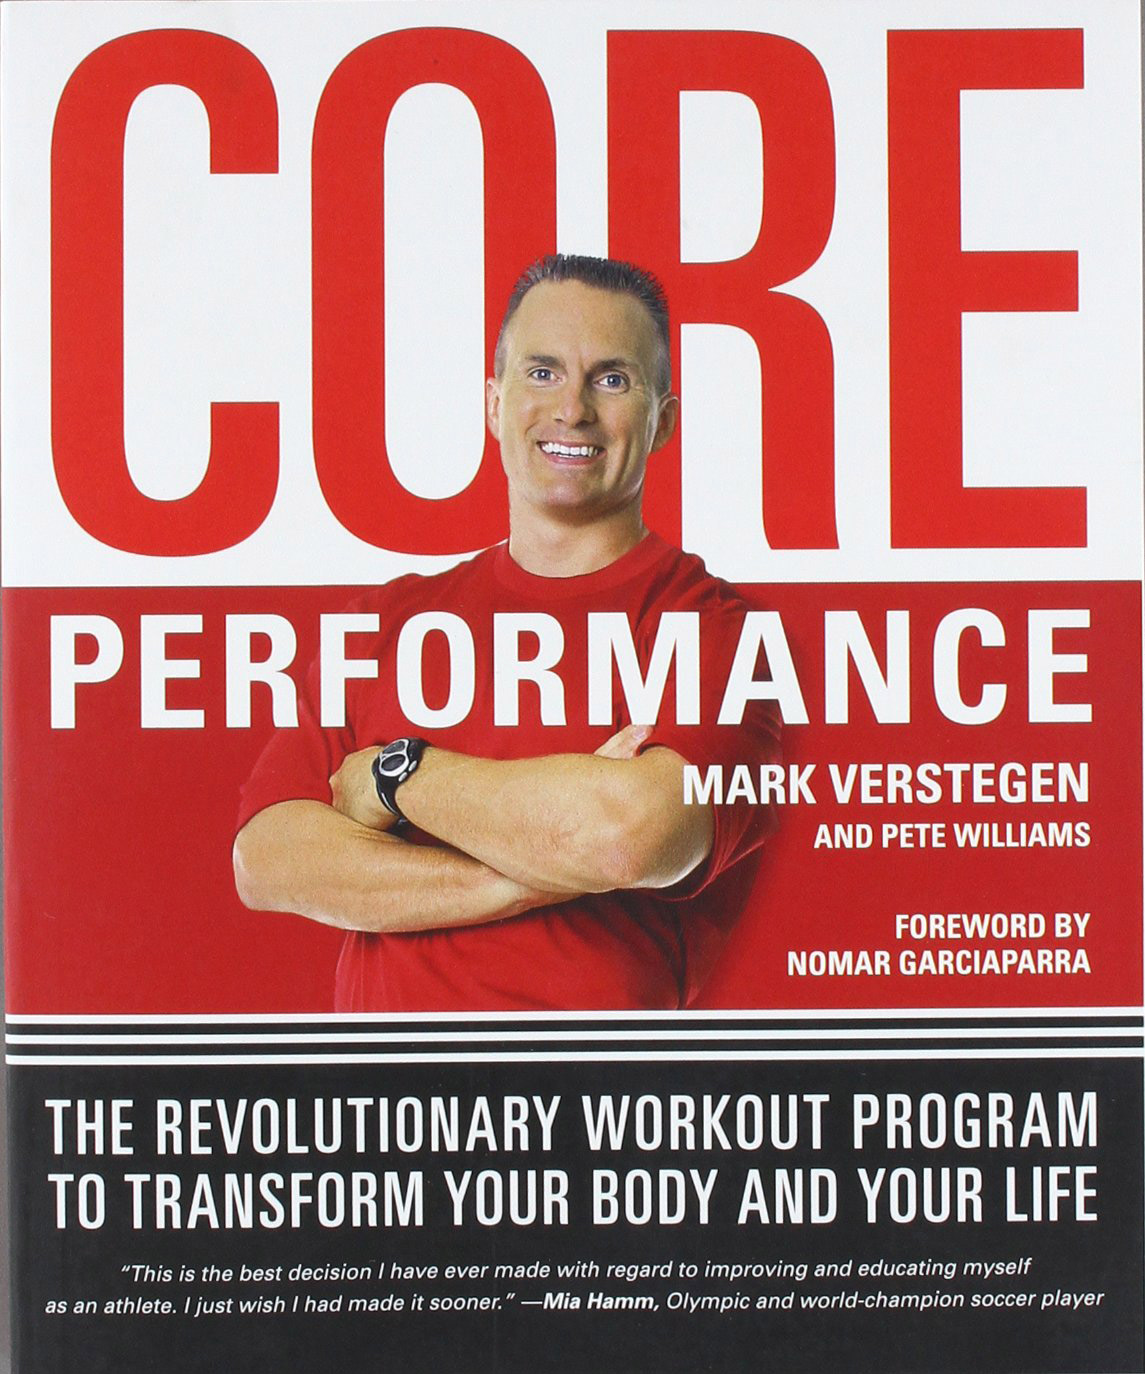 Mark verstegen core performance